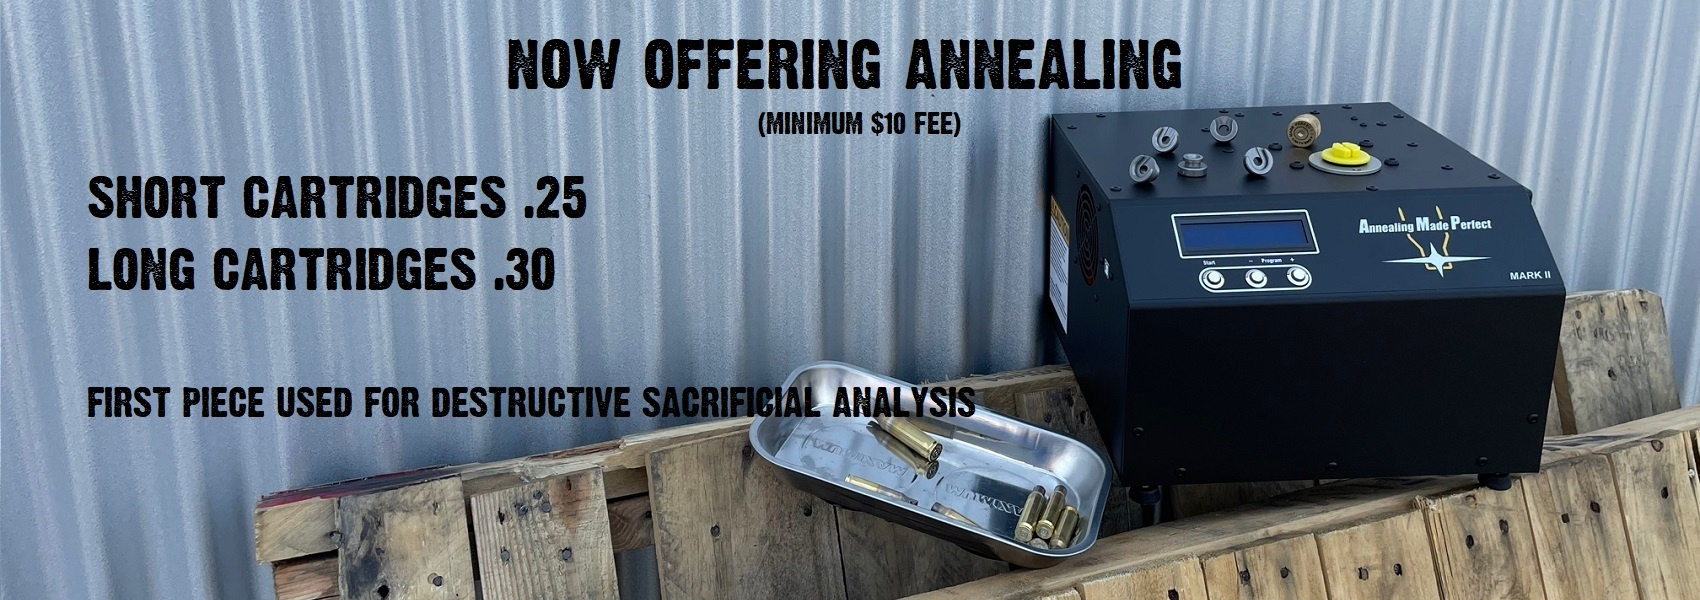 Now Offering Annealing